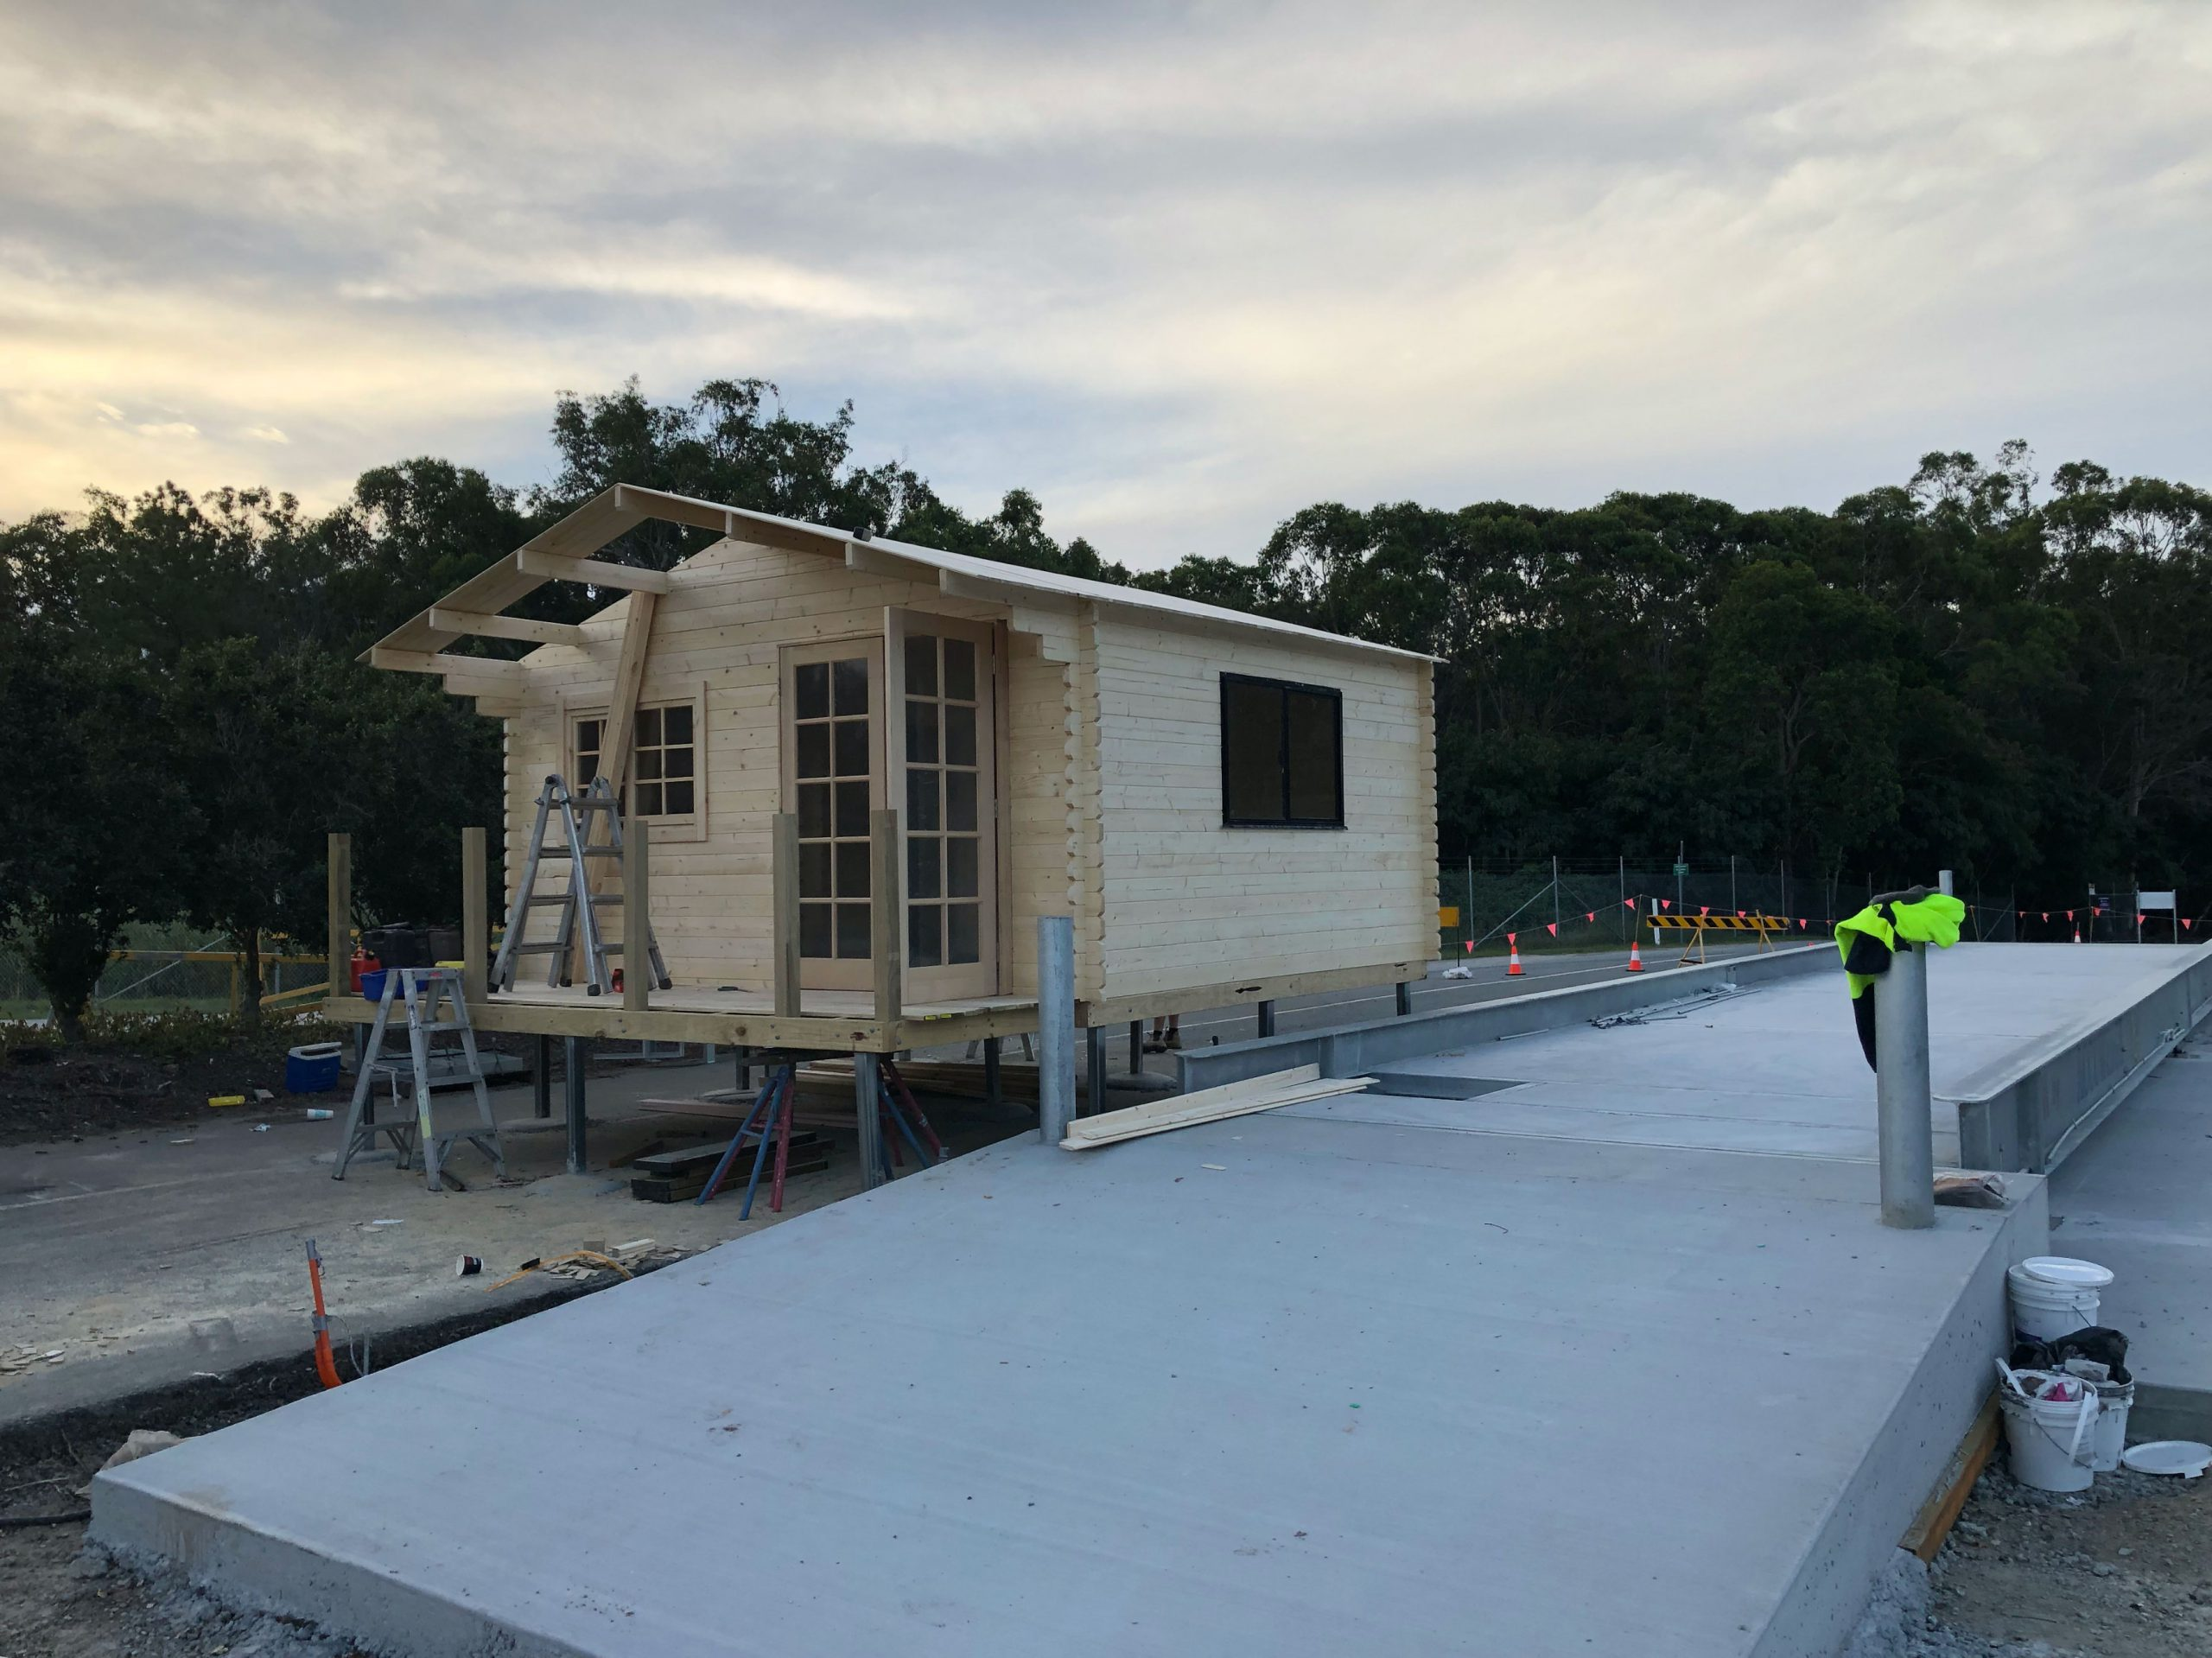 Cabin being built